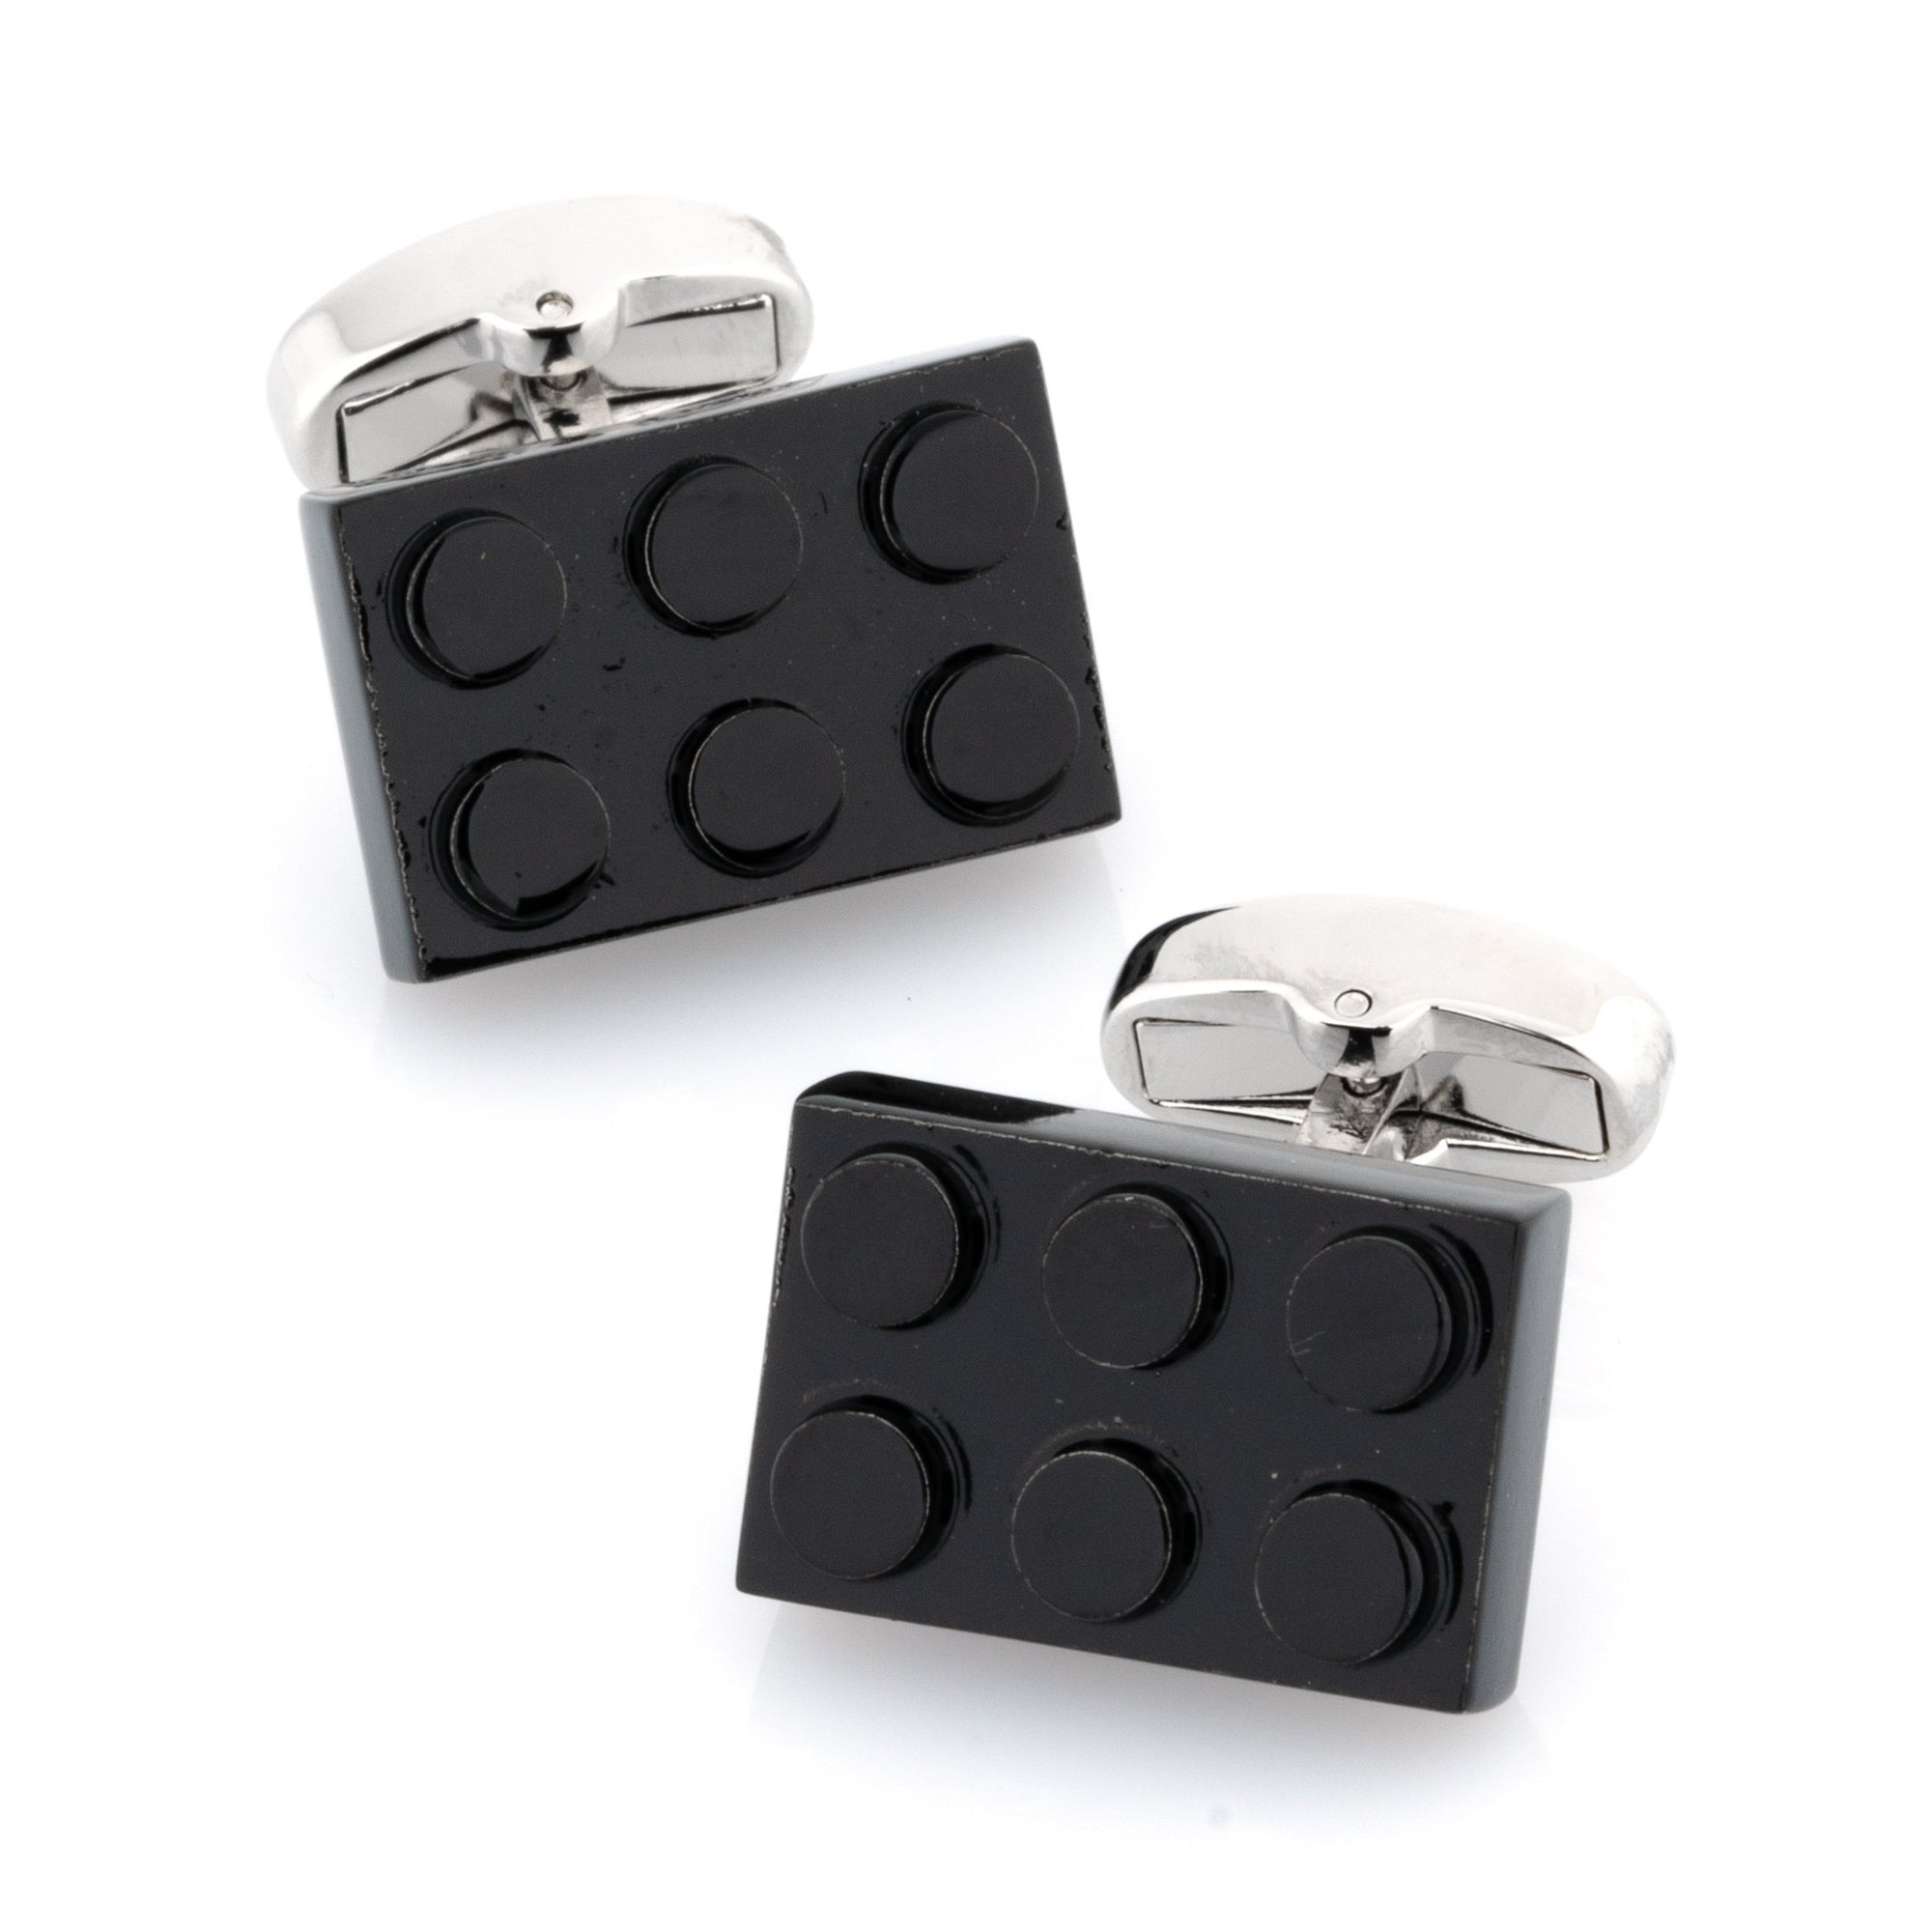 Black Building Block Cufflinks, Novelty Cufflinks, CL8710, Mens Cufflinks, Cufflinks, Cuffed, Clinks, Clinks Australia